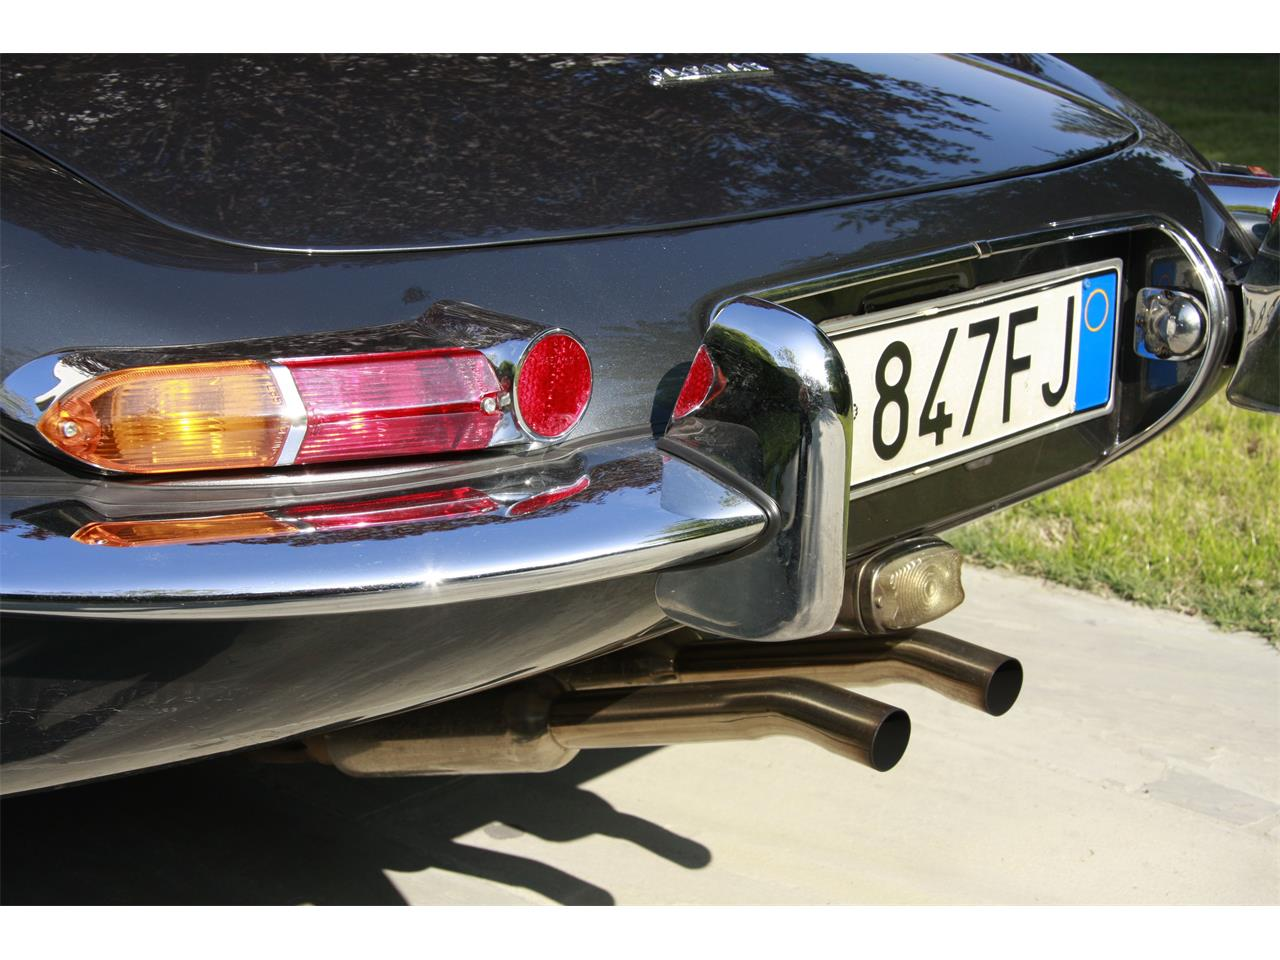 Large Picture of 1963 Jaguar E-Type located in Cadeo  - $200,000.00 Offered by a Private Seller - D7DC